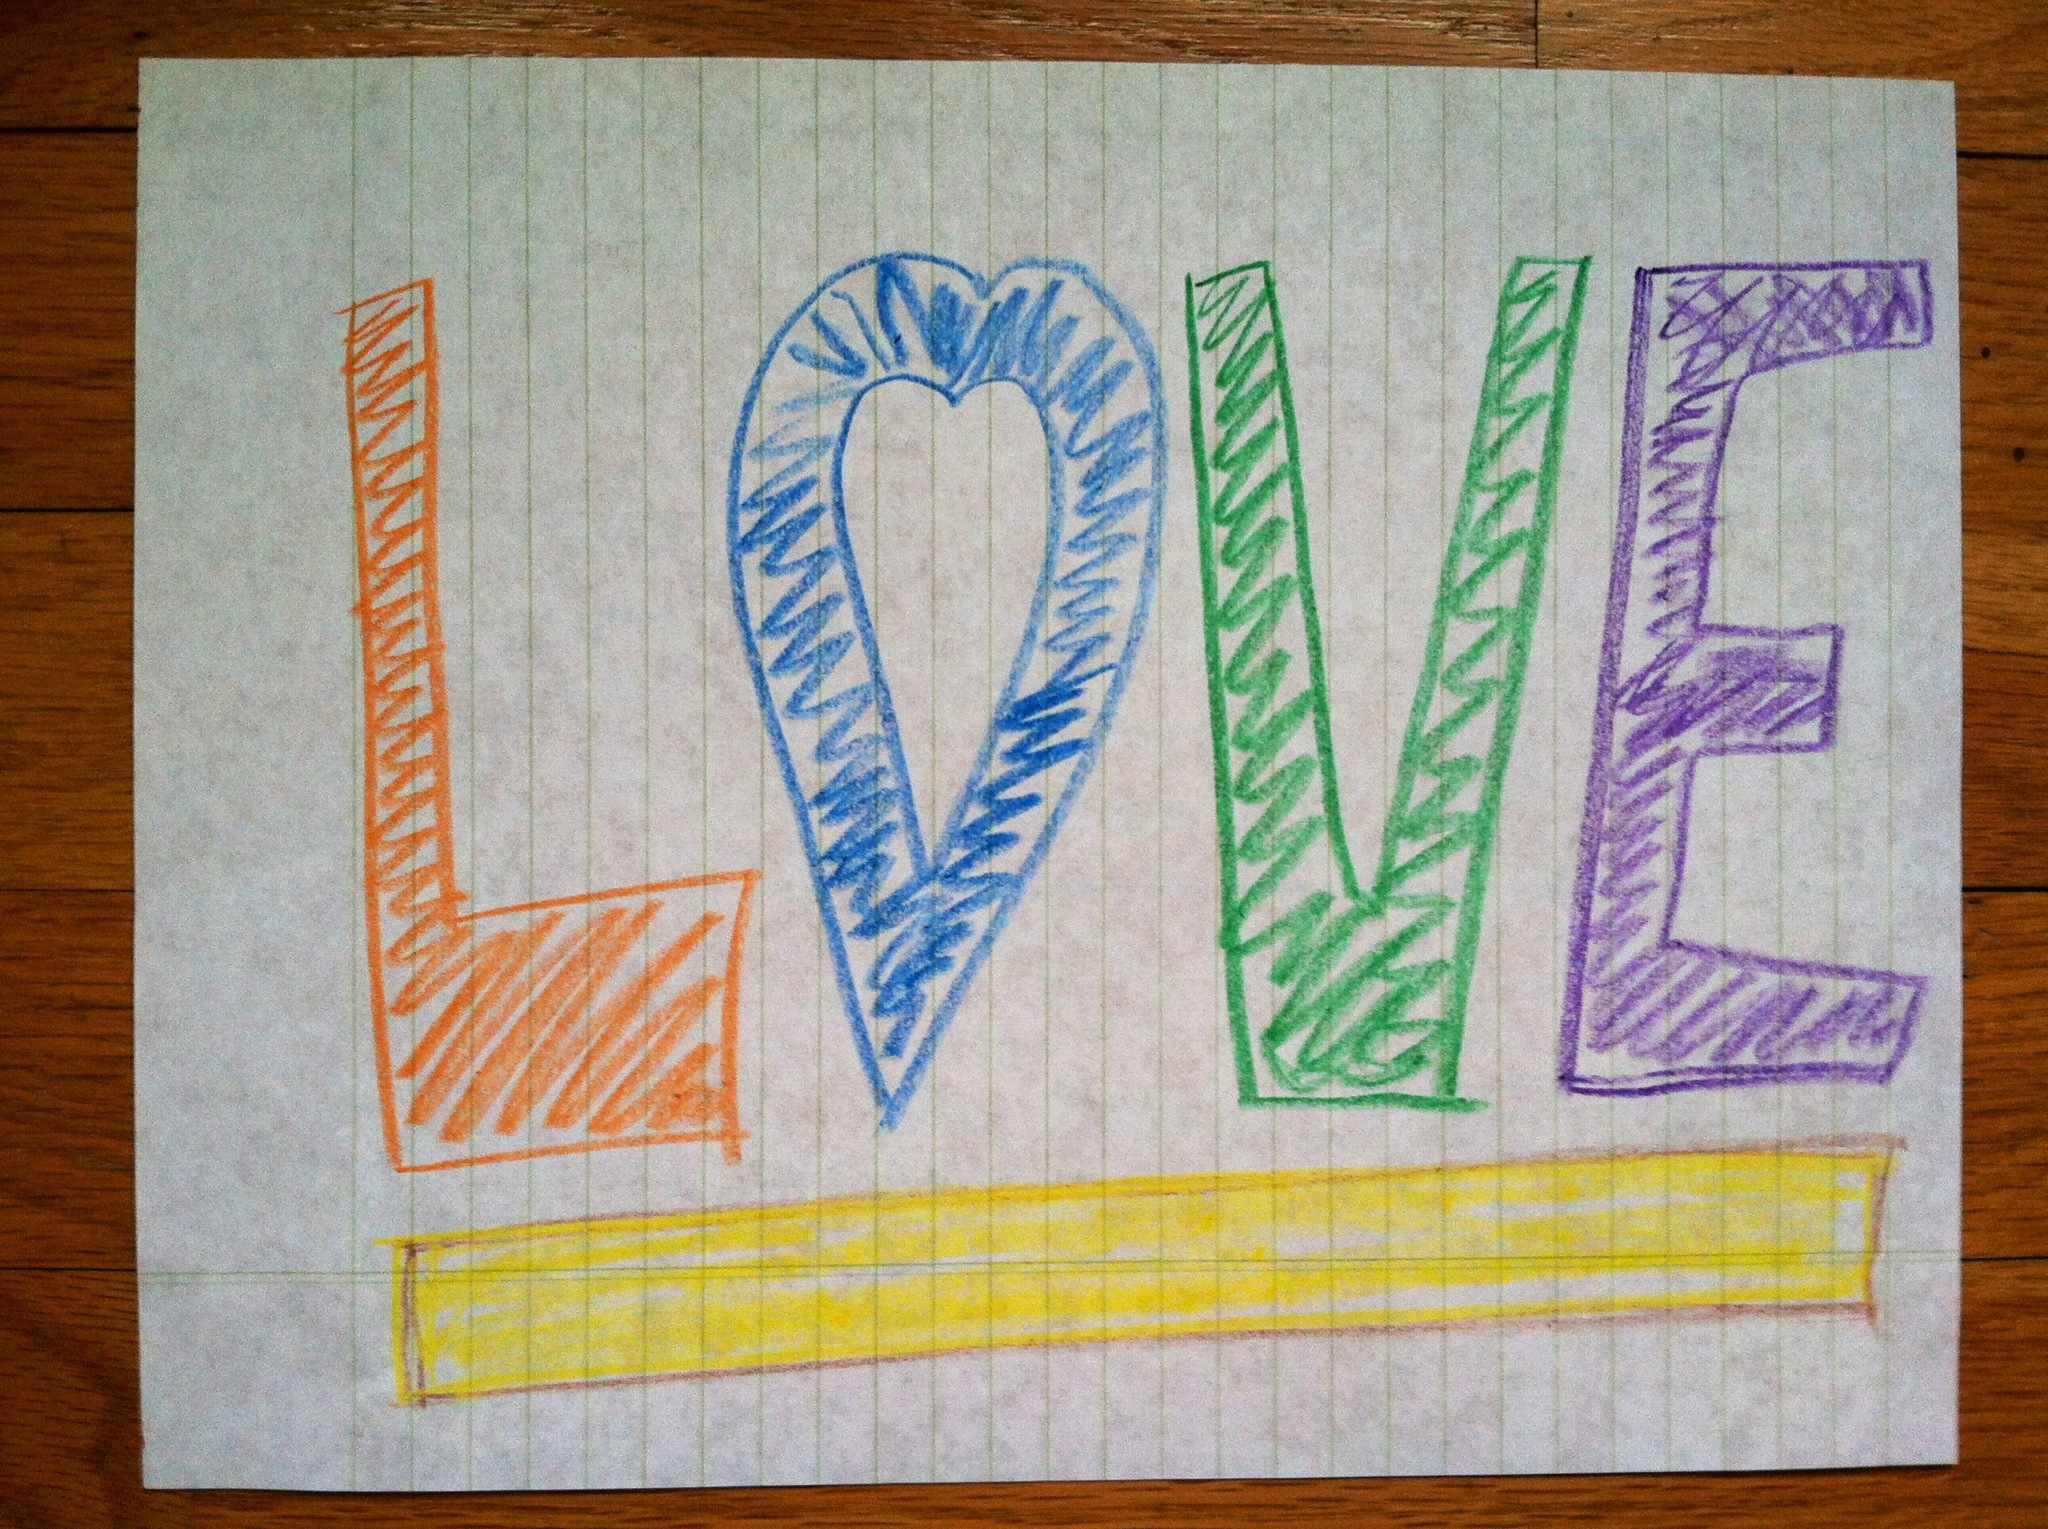 Crayon Masterpiece (I mean, really) by Heather Luxion